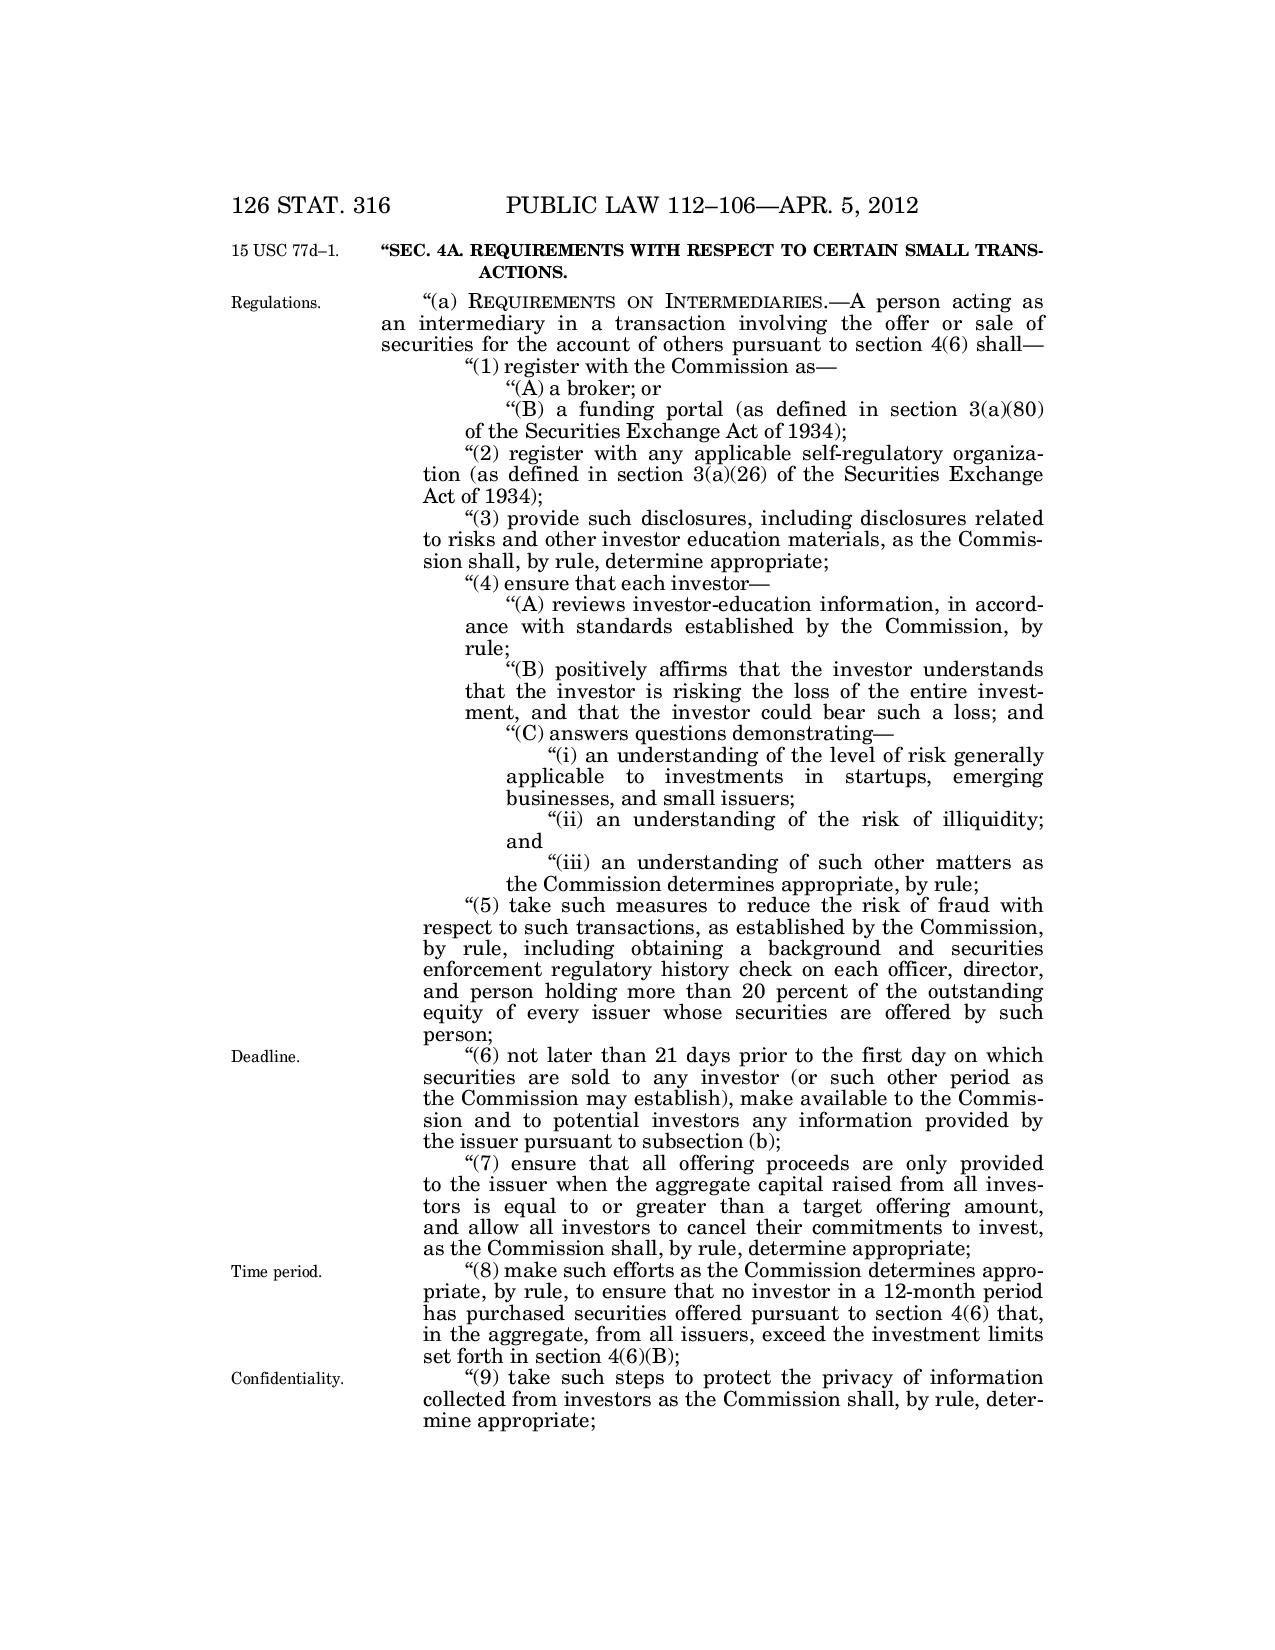 331653864-The-Jumpstart-Our-Business-Startups-Act-JOBS-Act-April-5-of-2012-page-012.jpg